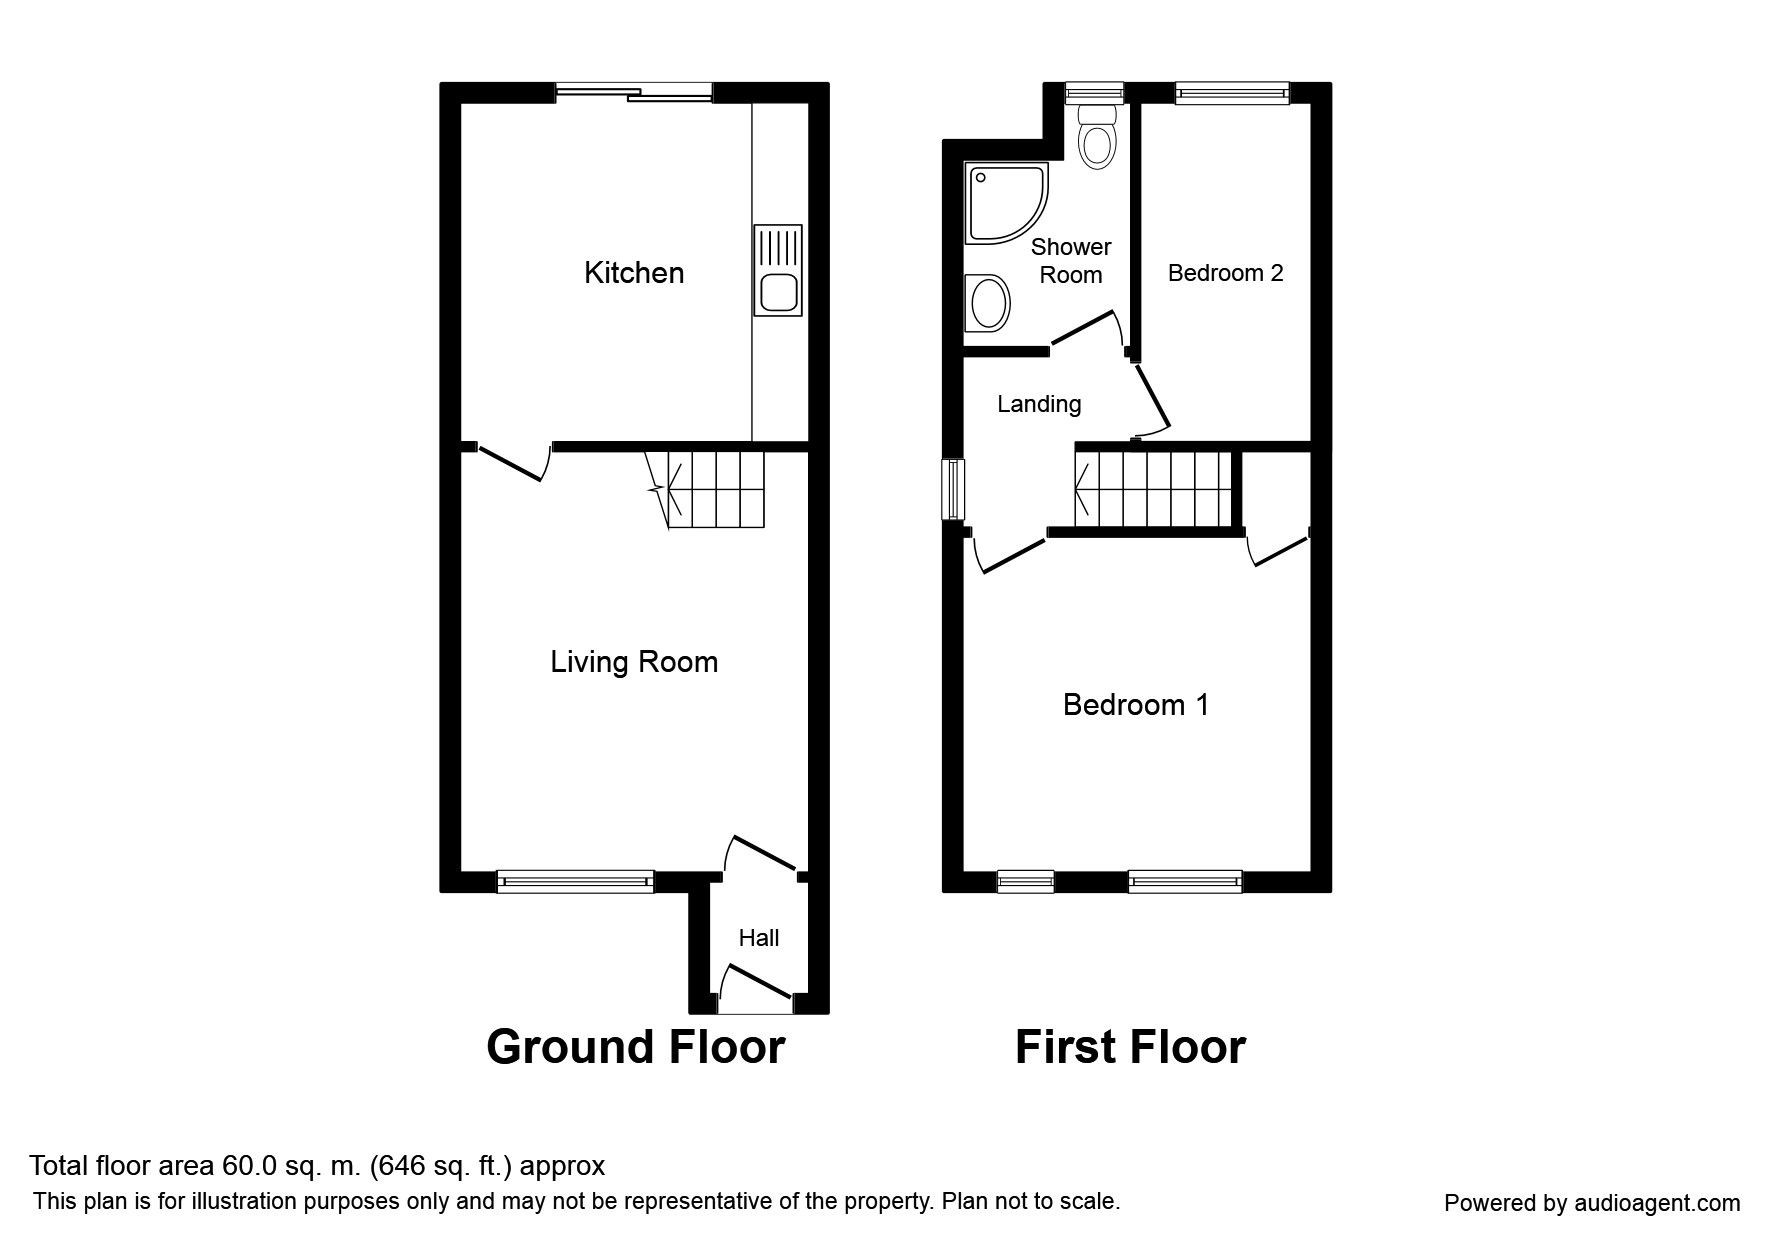 Property for sale in Rothbury Morpeth Northumberland Find